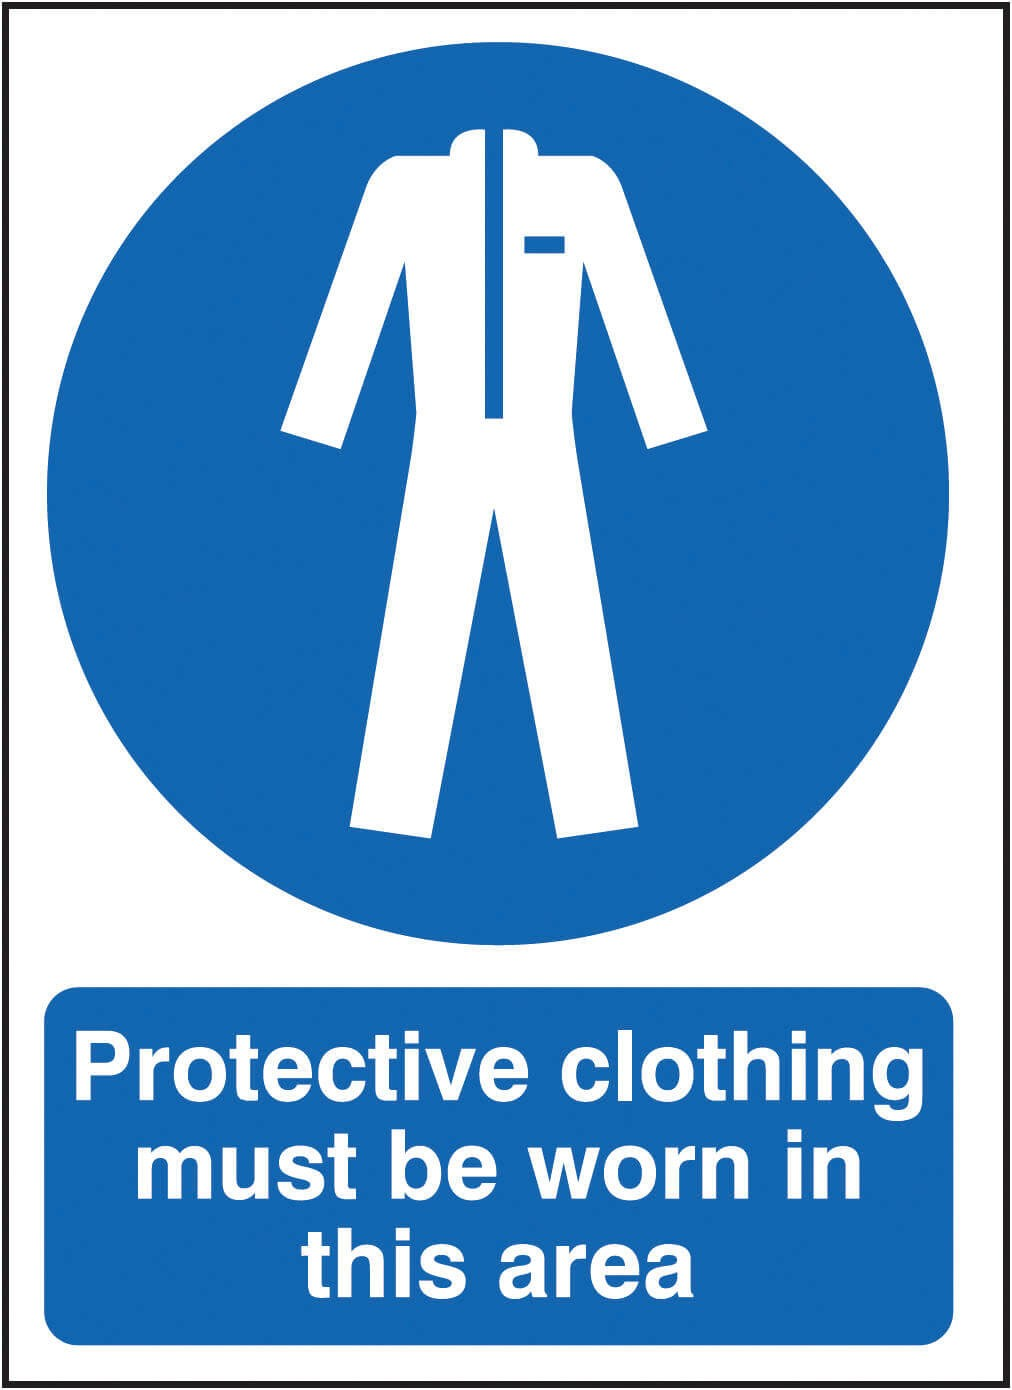 Protection clothing must be worn in this area